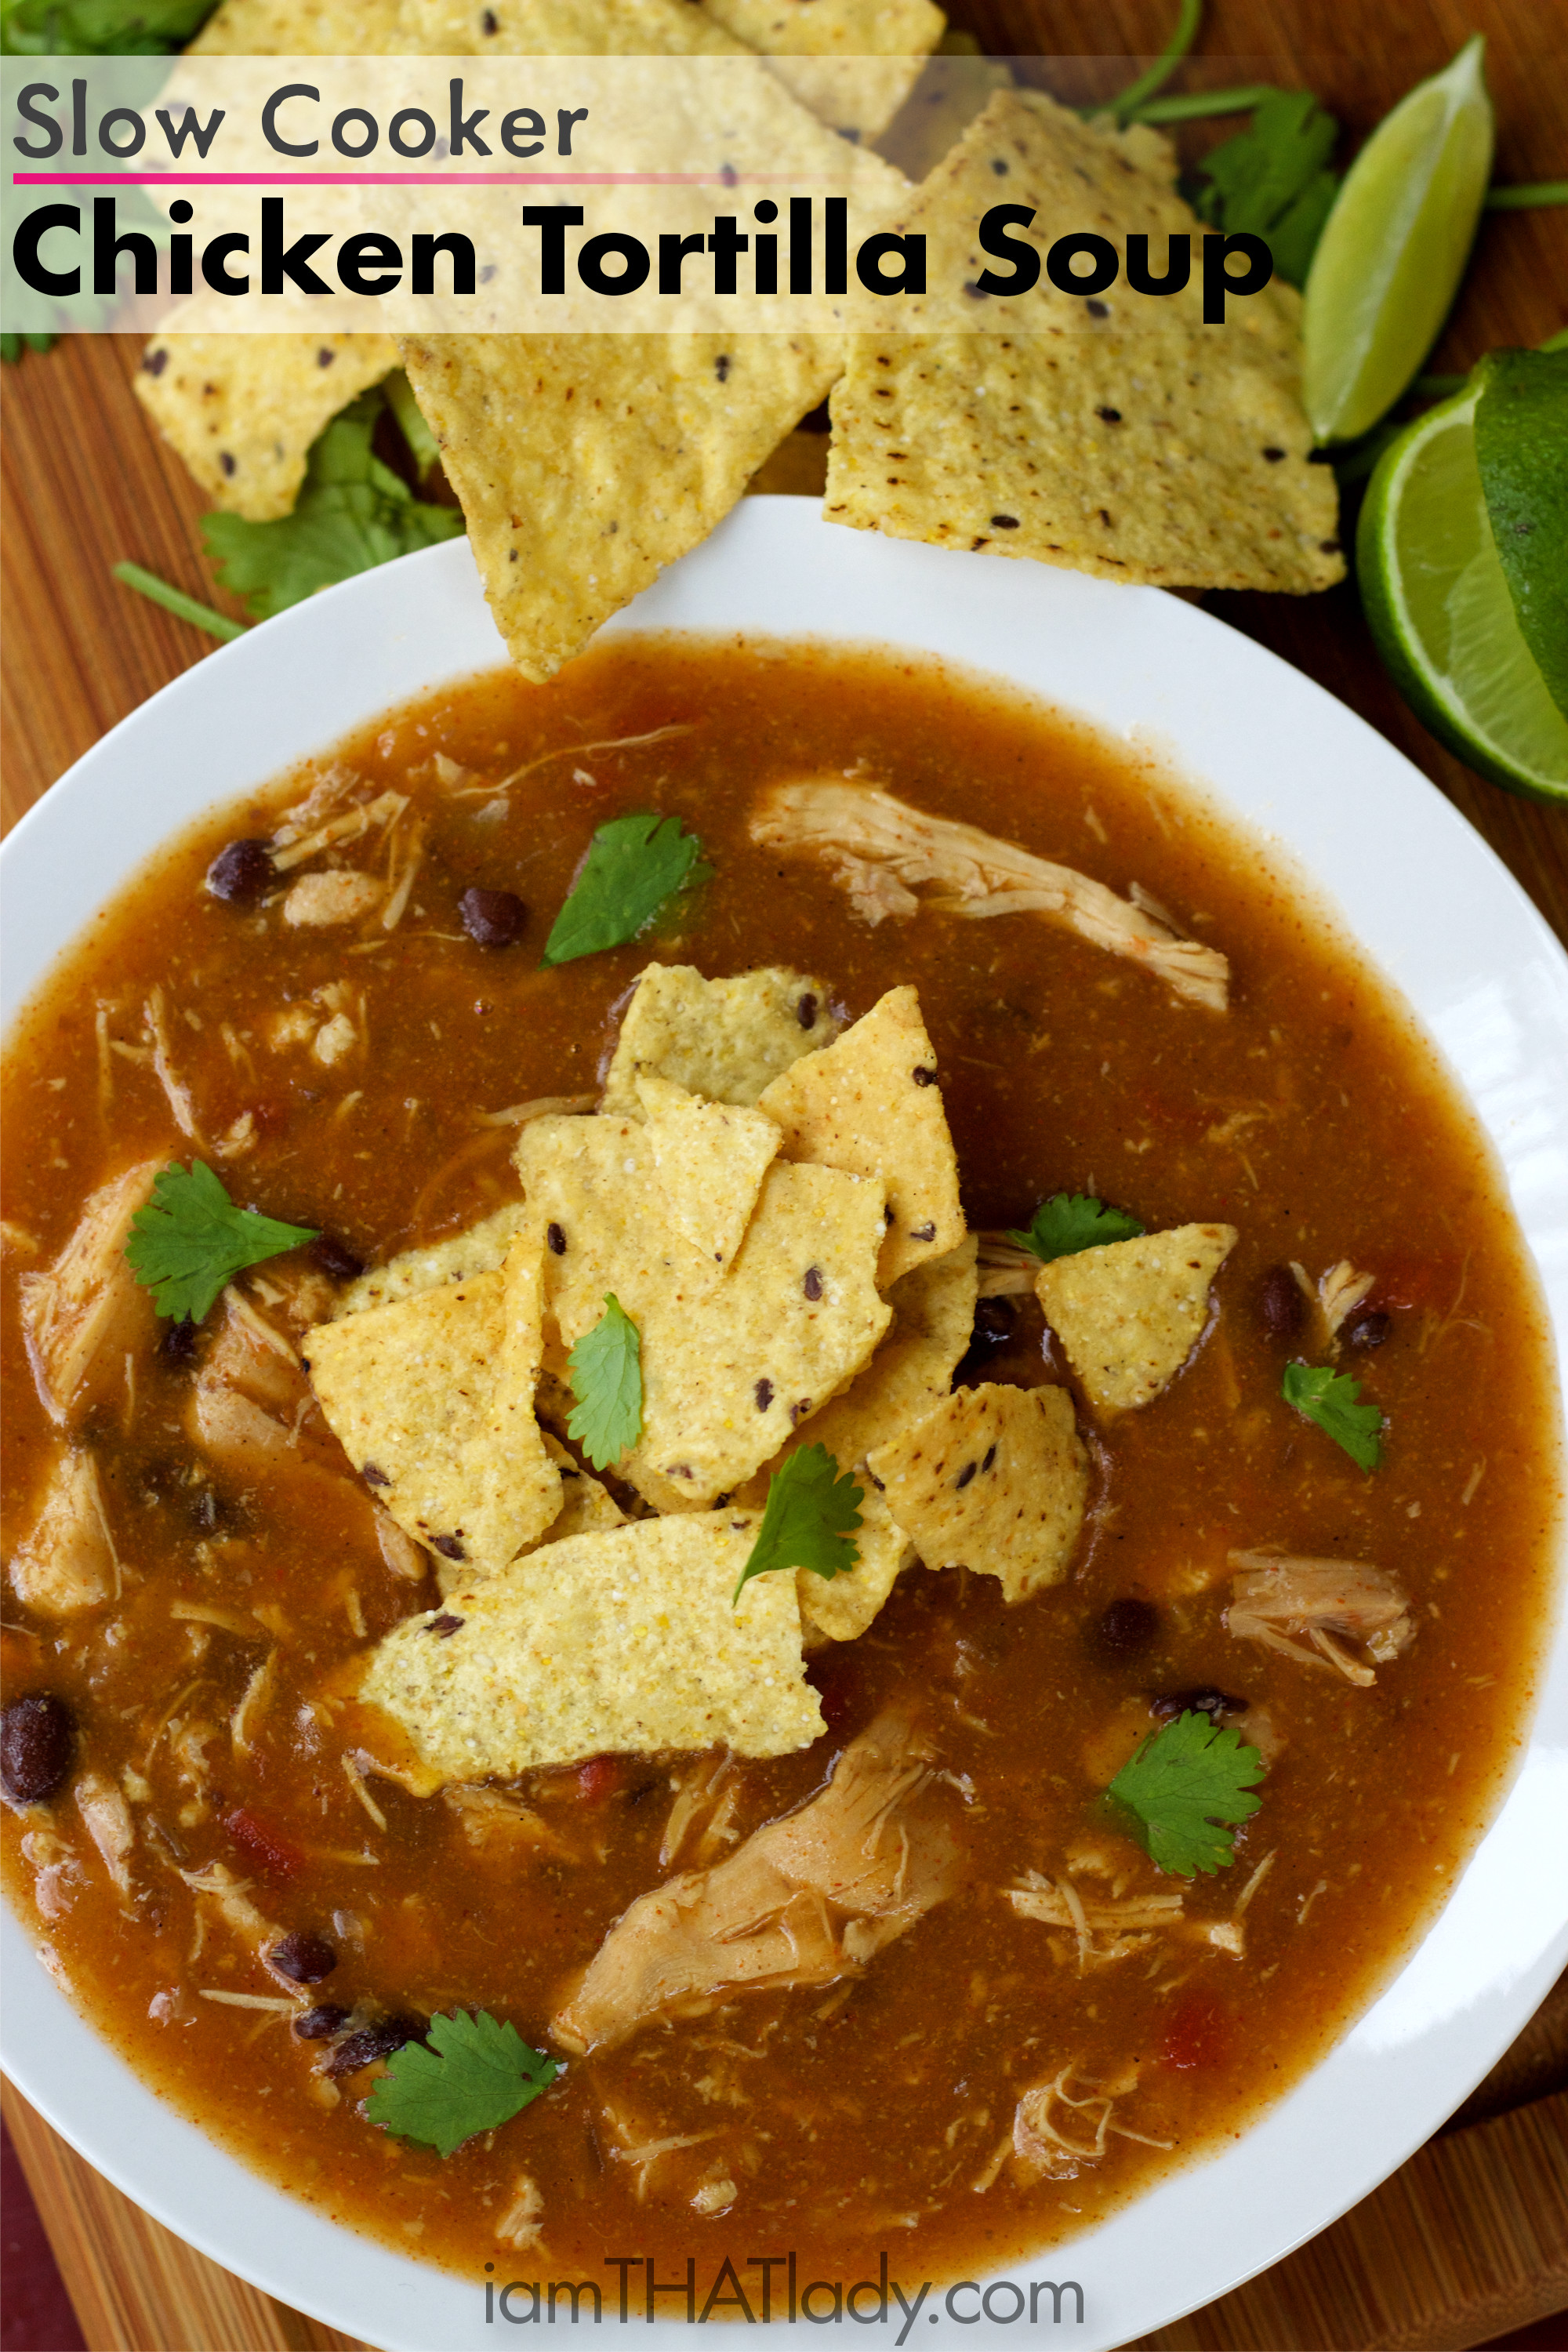 Slow cooker chicken tortilla soup lauren greutman this slow cooker chicken tortilla soup recipe is amazing if you love mexican food forumfinder